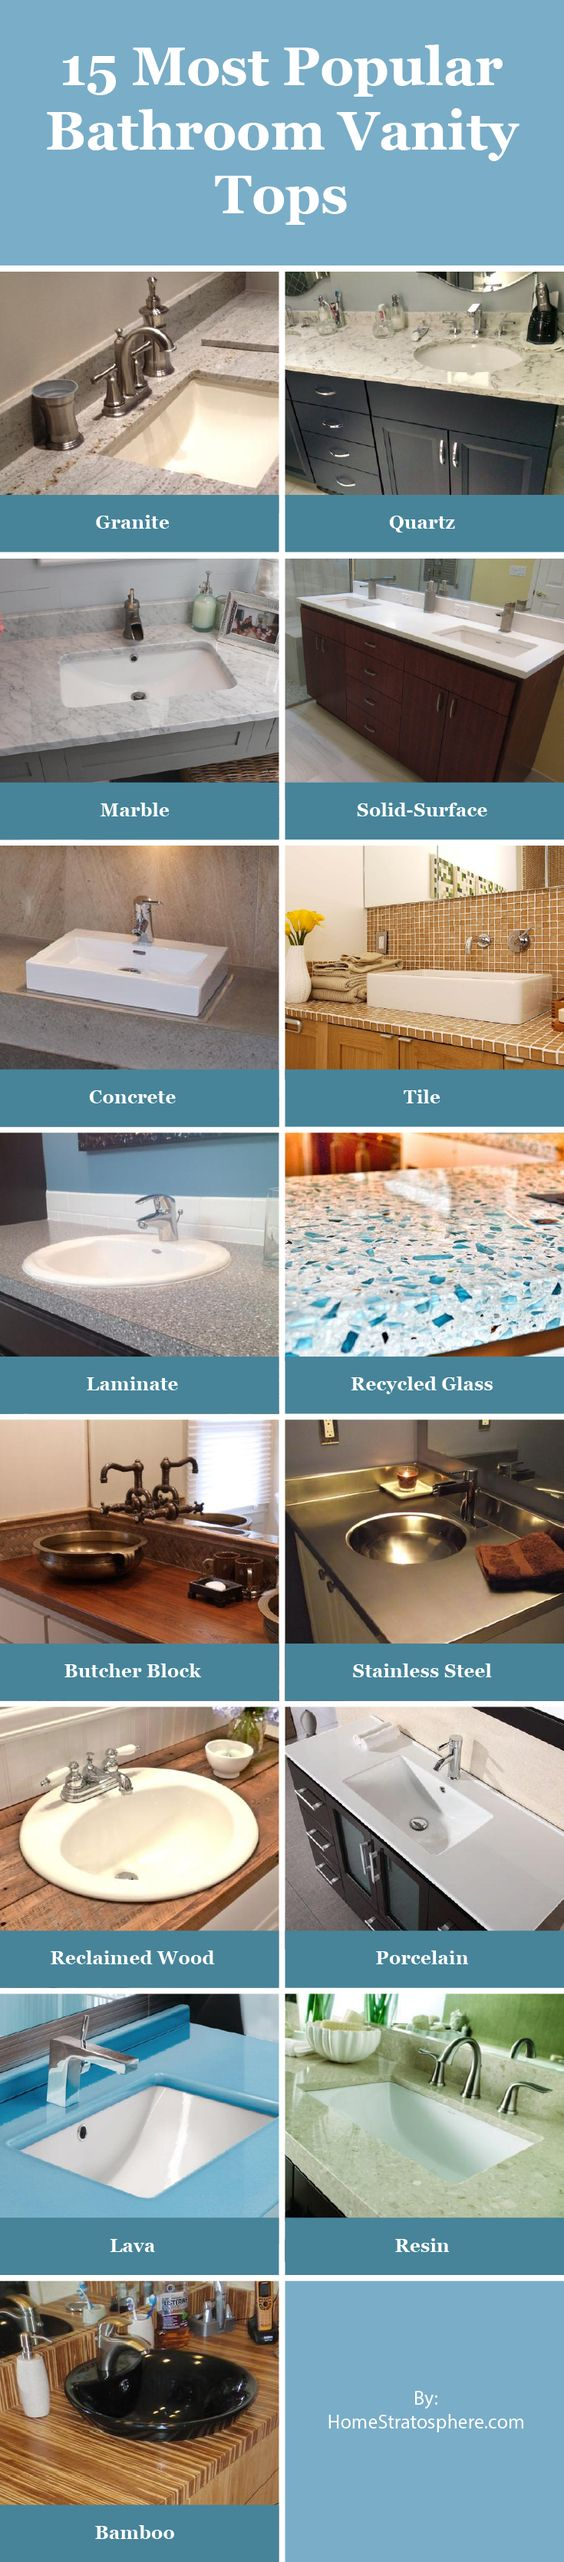 15 Most Popular Bathroom Vanity Tops: Materials, Styles and Cost -